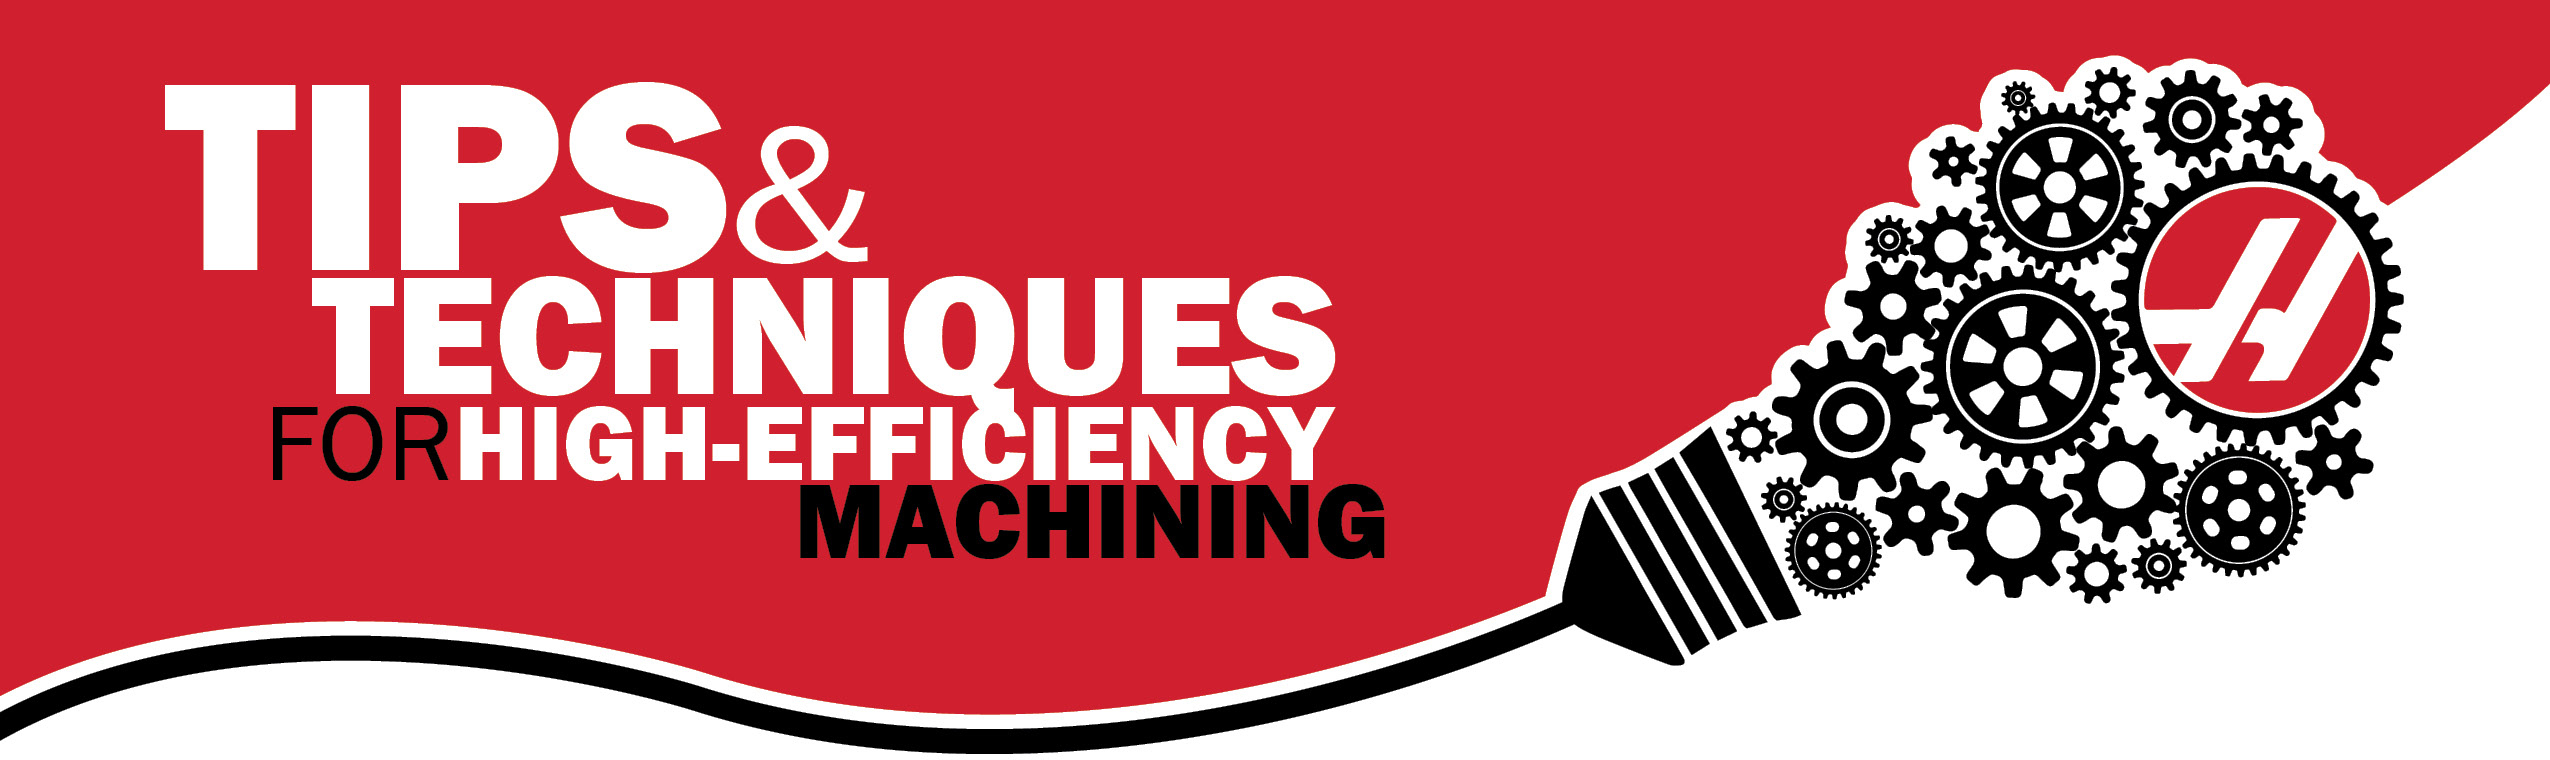 Tips & Techniques for High Efficiency Machining